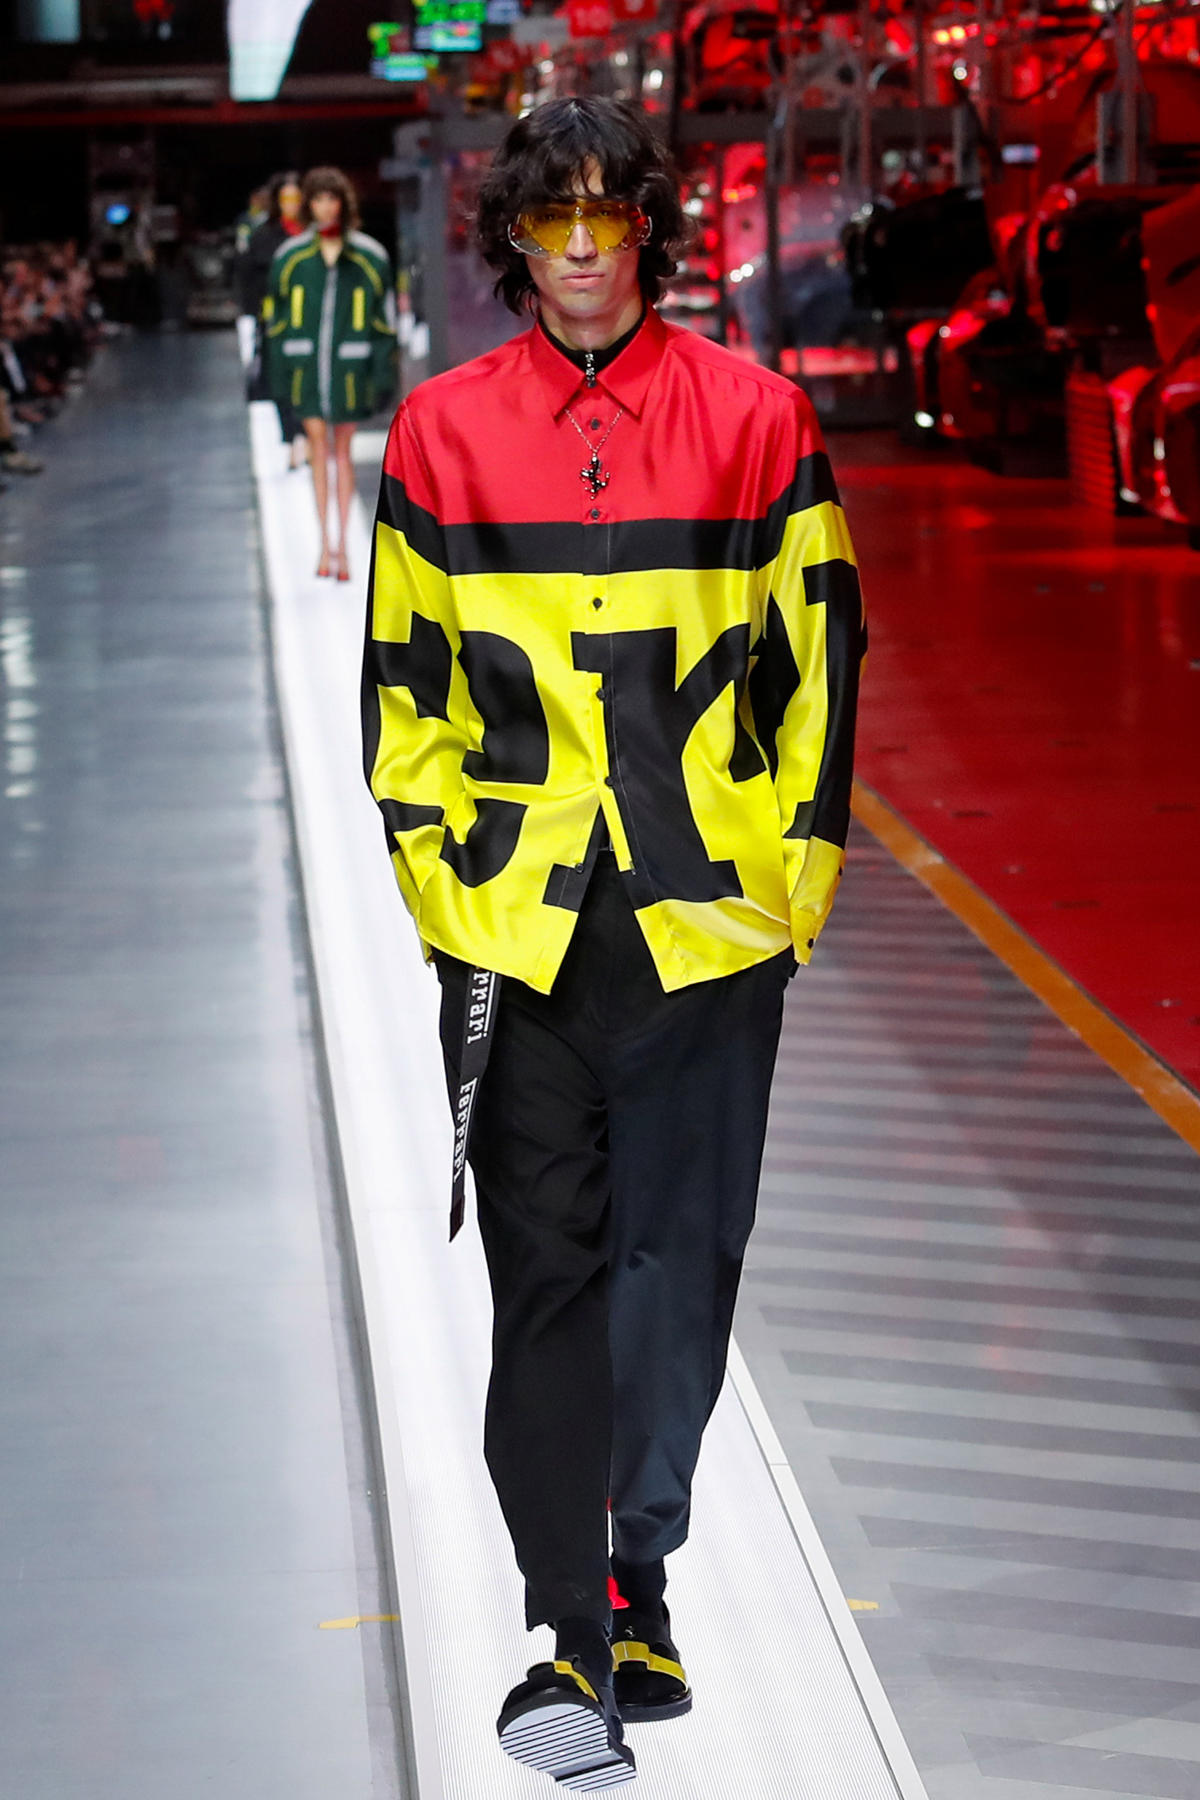 Ferrari brand launches its first in-house couture